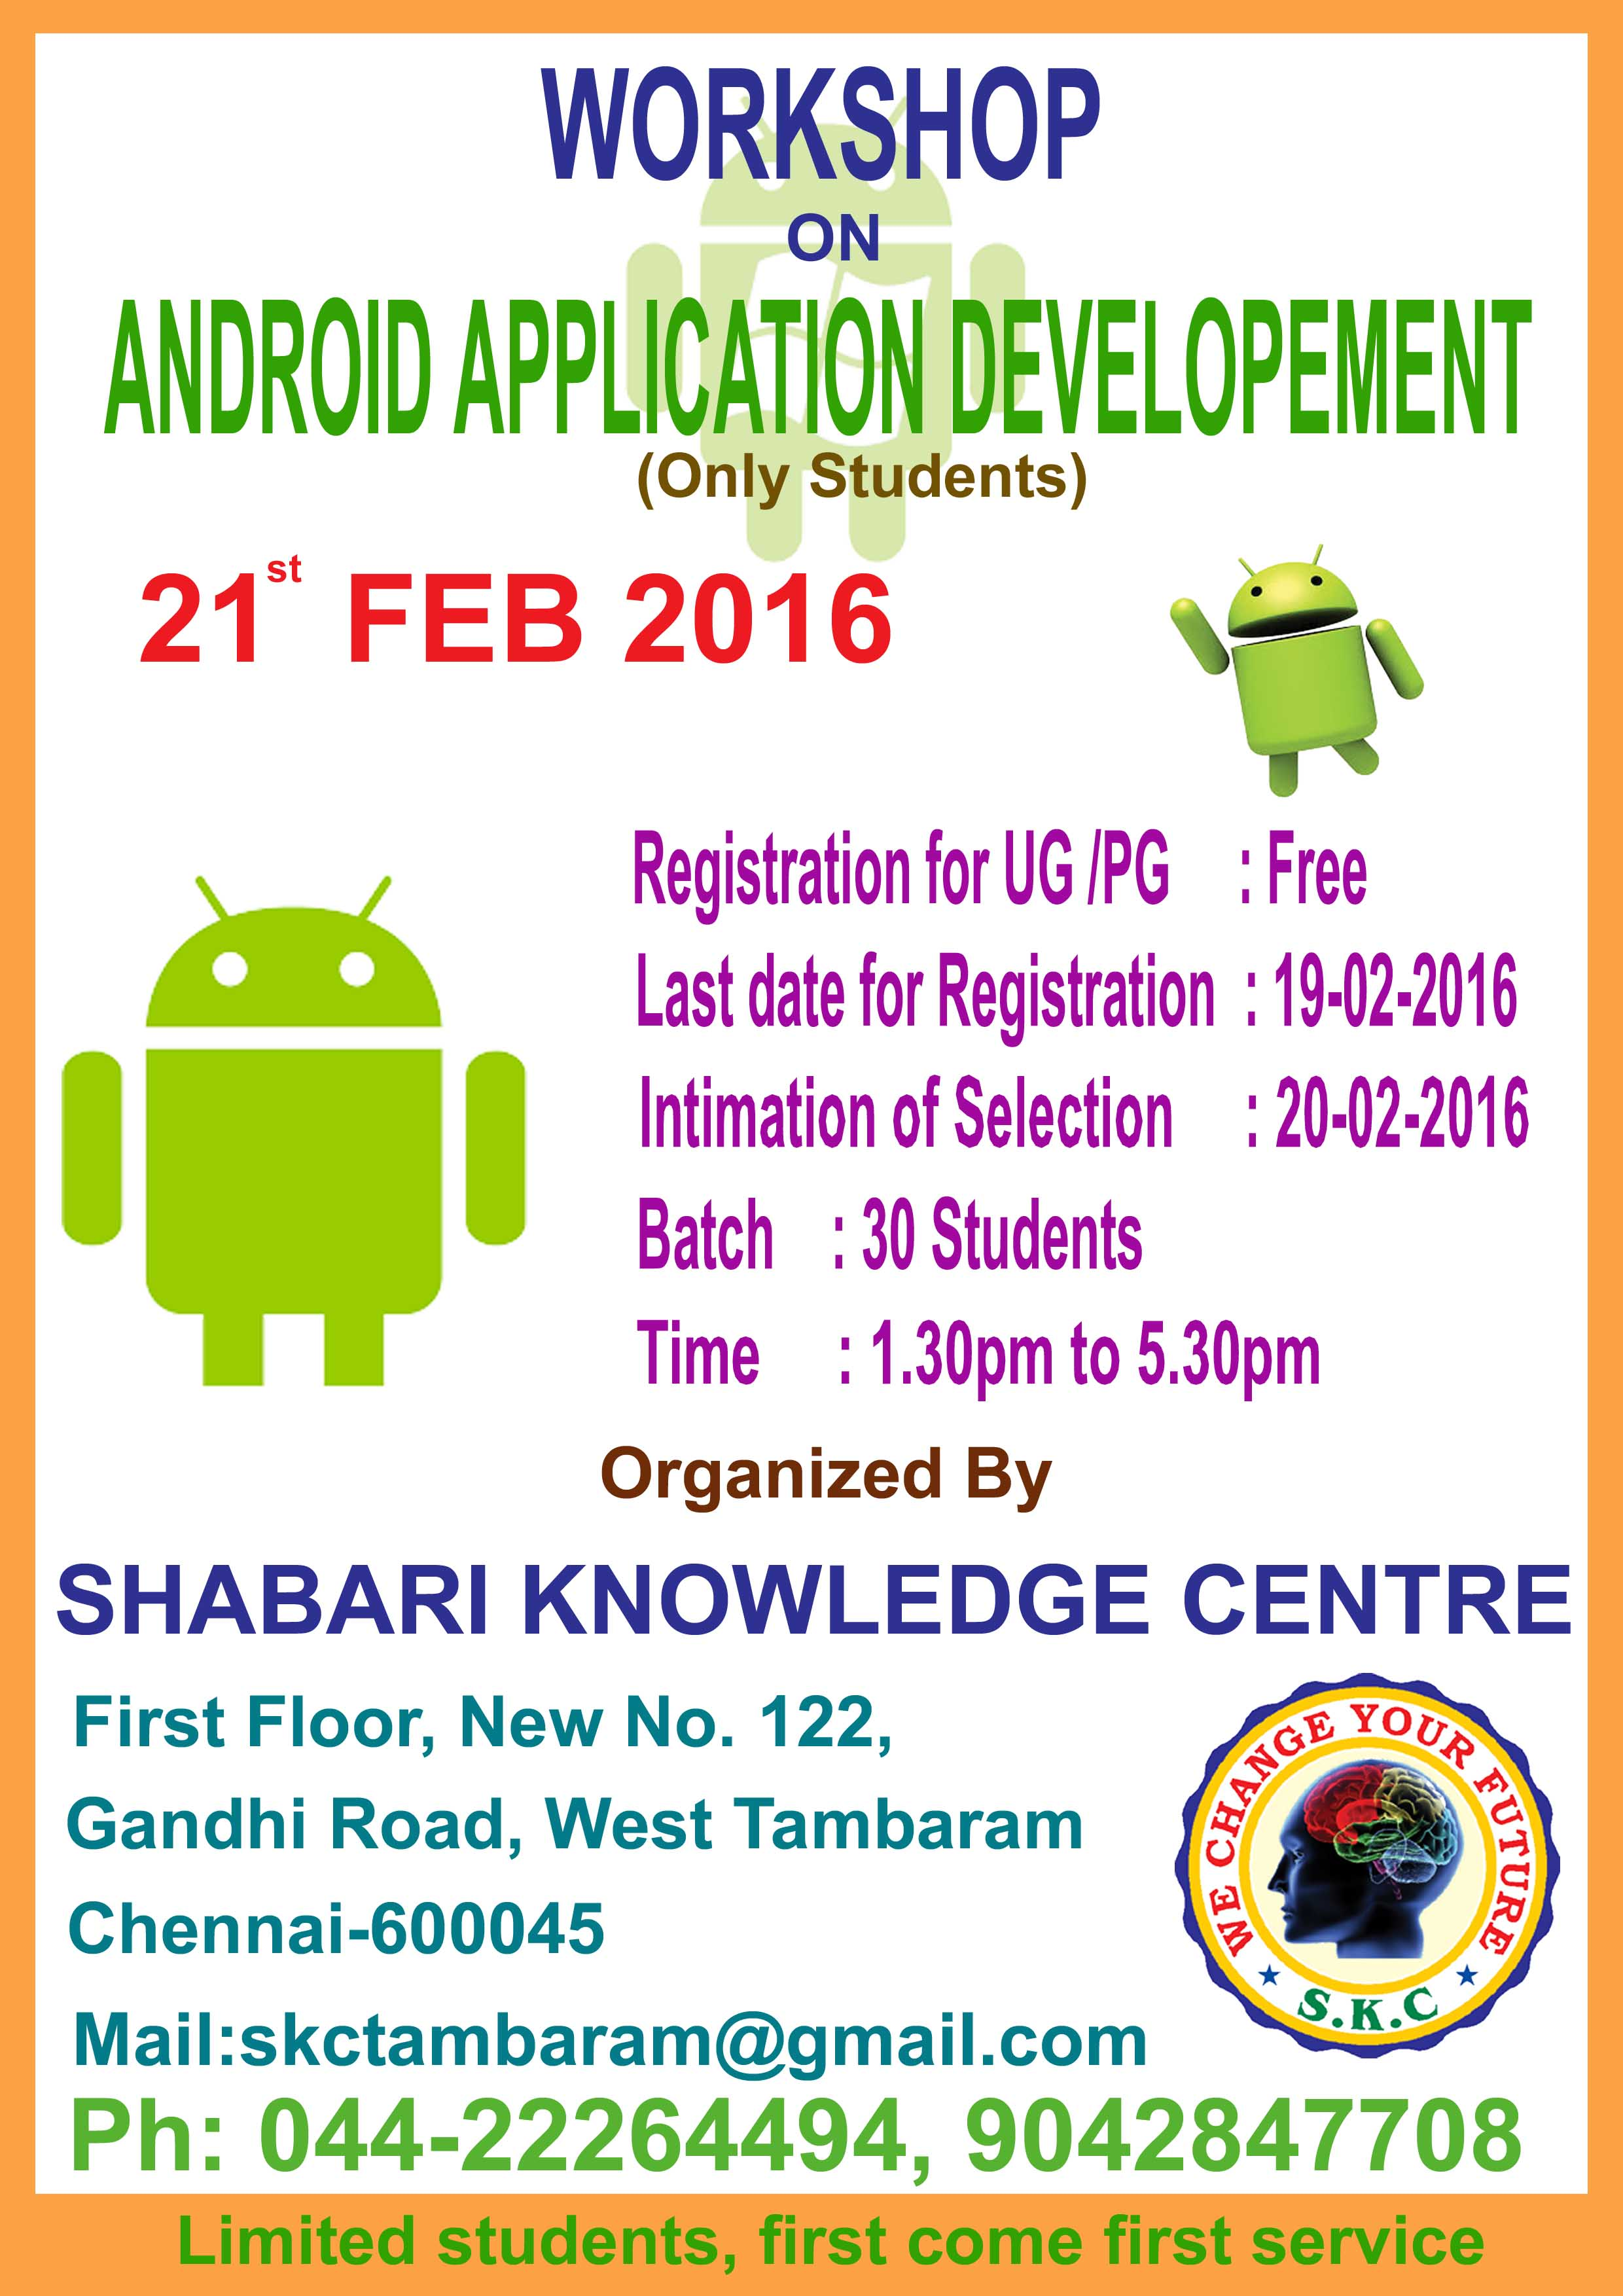 """Dear Sir/Madam,  Sub:  One day Workshop on """"ANDROID TECHNOLOGIES AND ITS   APPLICATIONS""""  We are happy to inform you that the Shabari Knowledge Center organizing one day Free workshop on android technologies and its applications to UG/PG students on Feb. 21st , 2016. If already attended this workshop please refer your friend.  We request you to participate in our program.The information brochure is enclosed herewith for your kind perusal. We look forward to welcoming you to the workshop.  With warm Regards,   Bala Krishnan,   Shabari Knowledge Center,"""